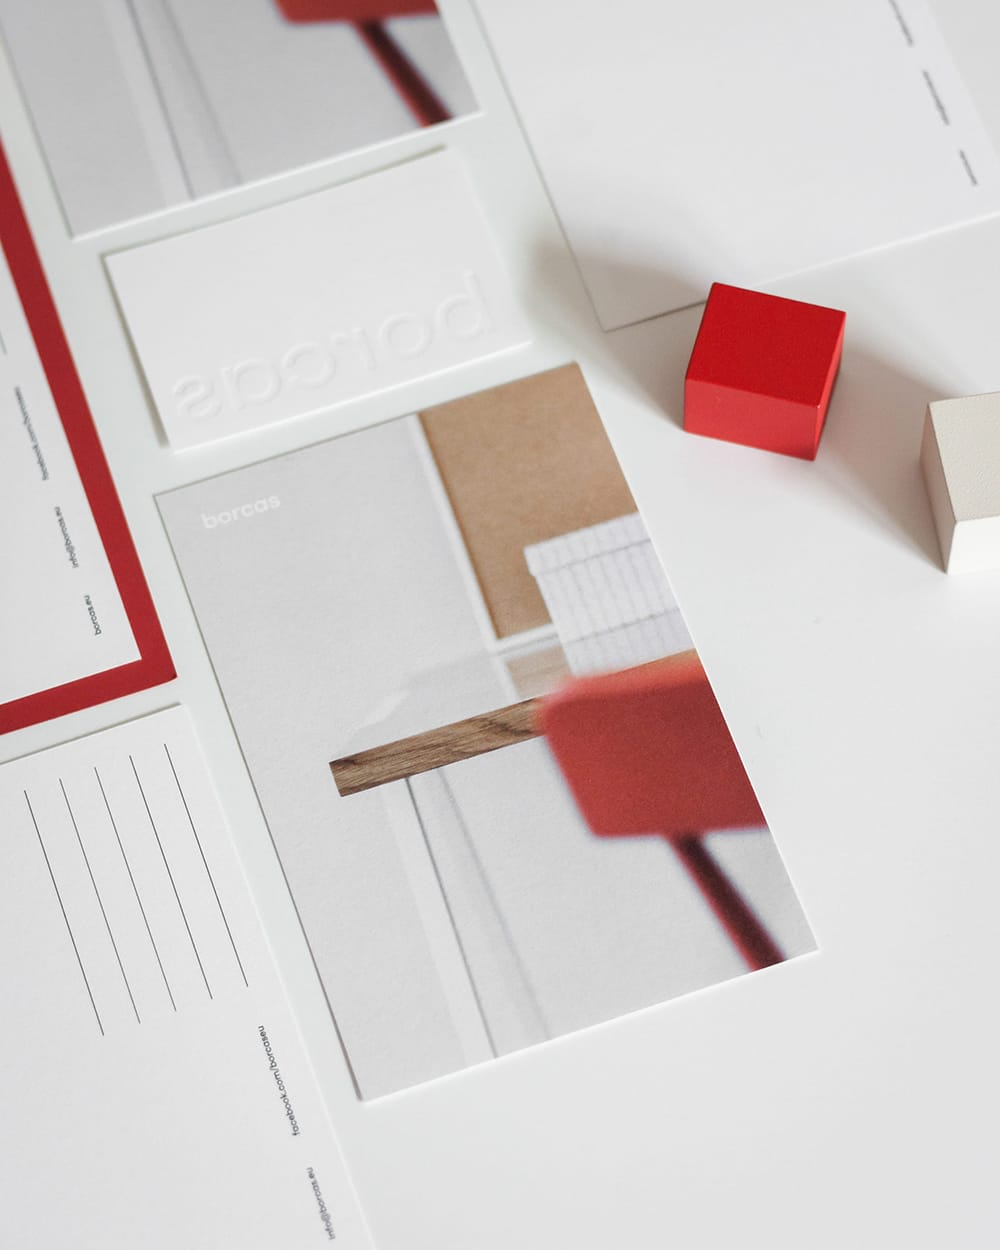 Couple of branding stationery placed on a white table. borcas brand